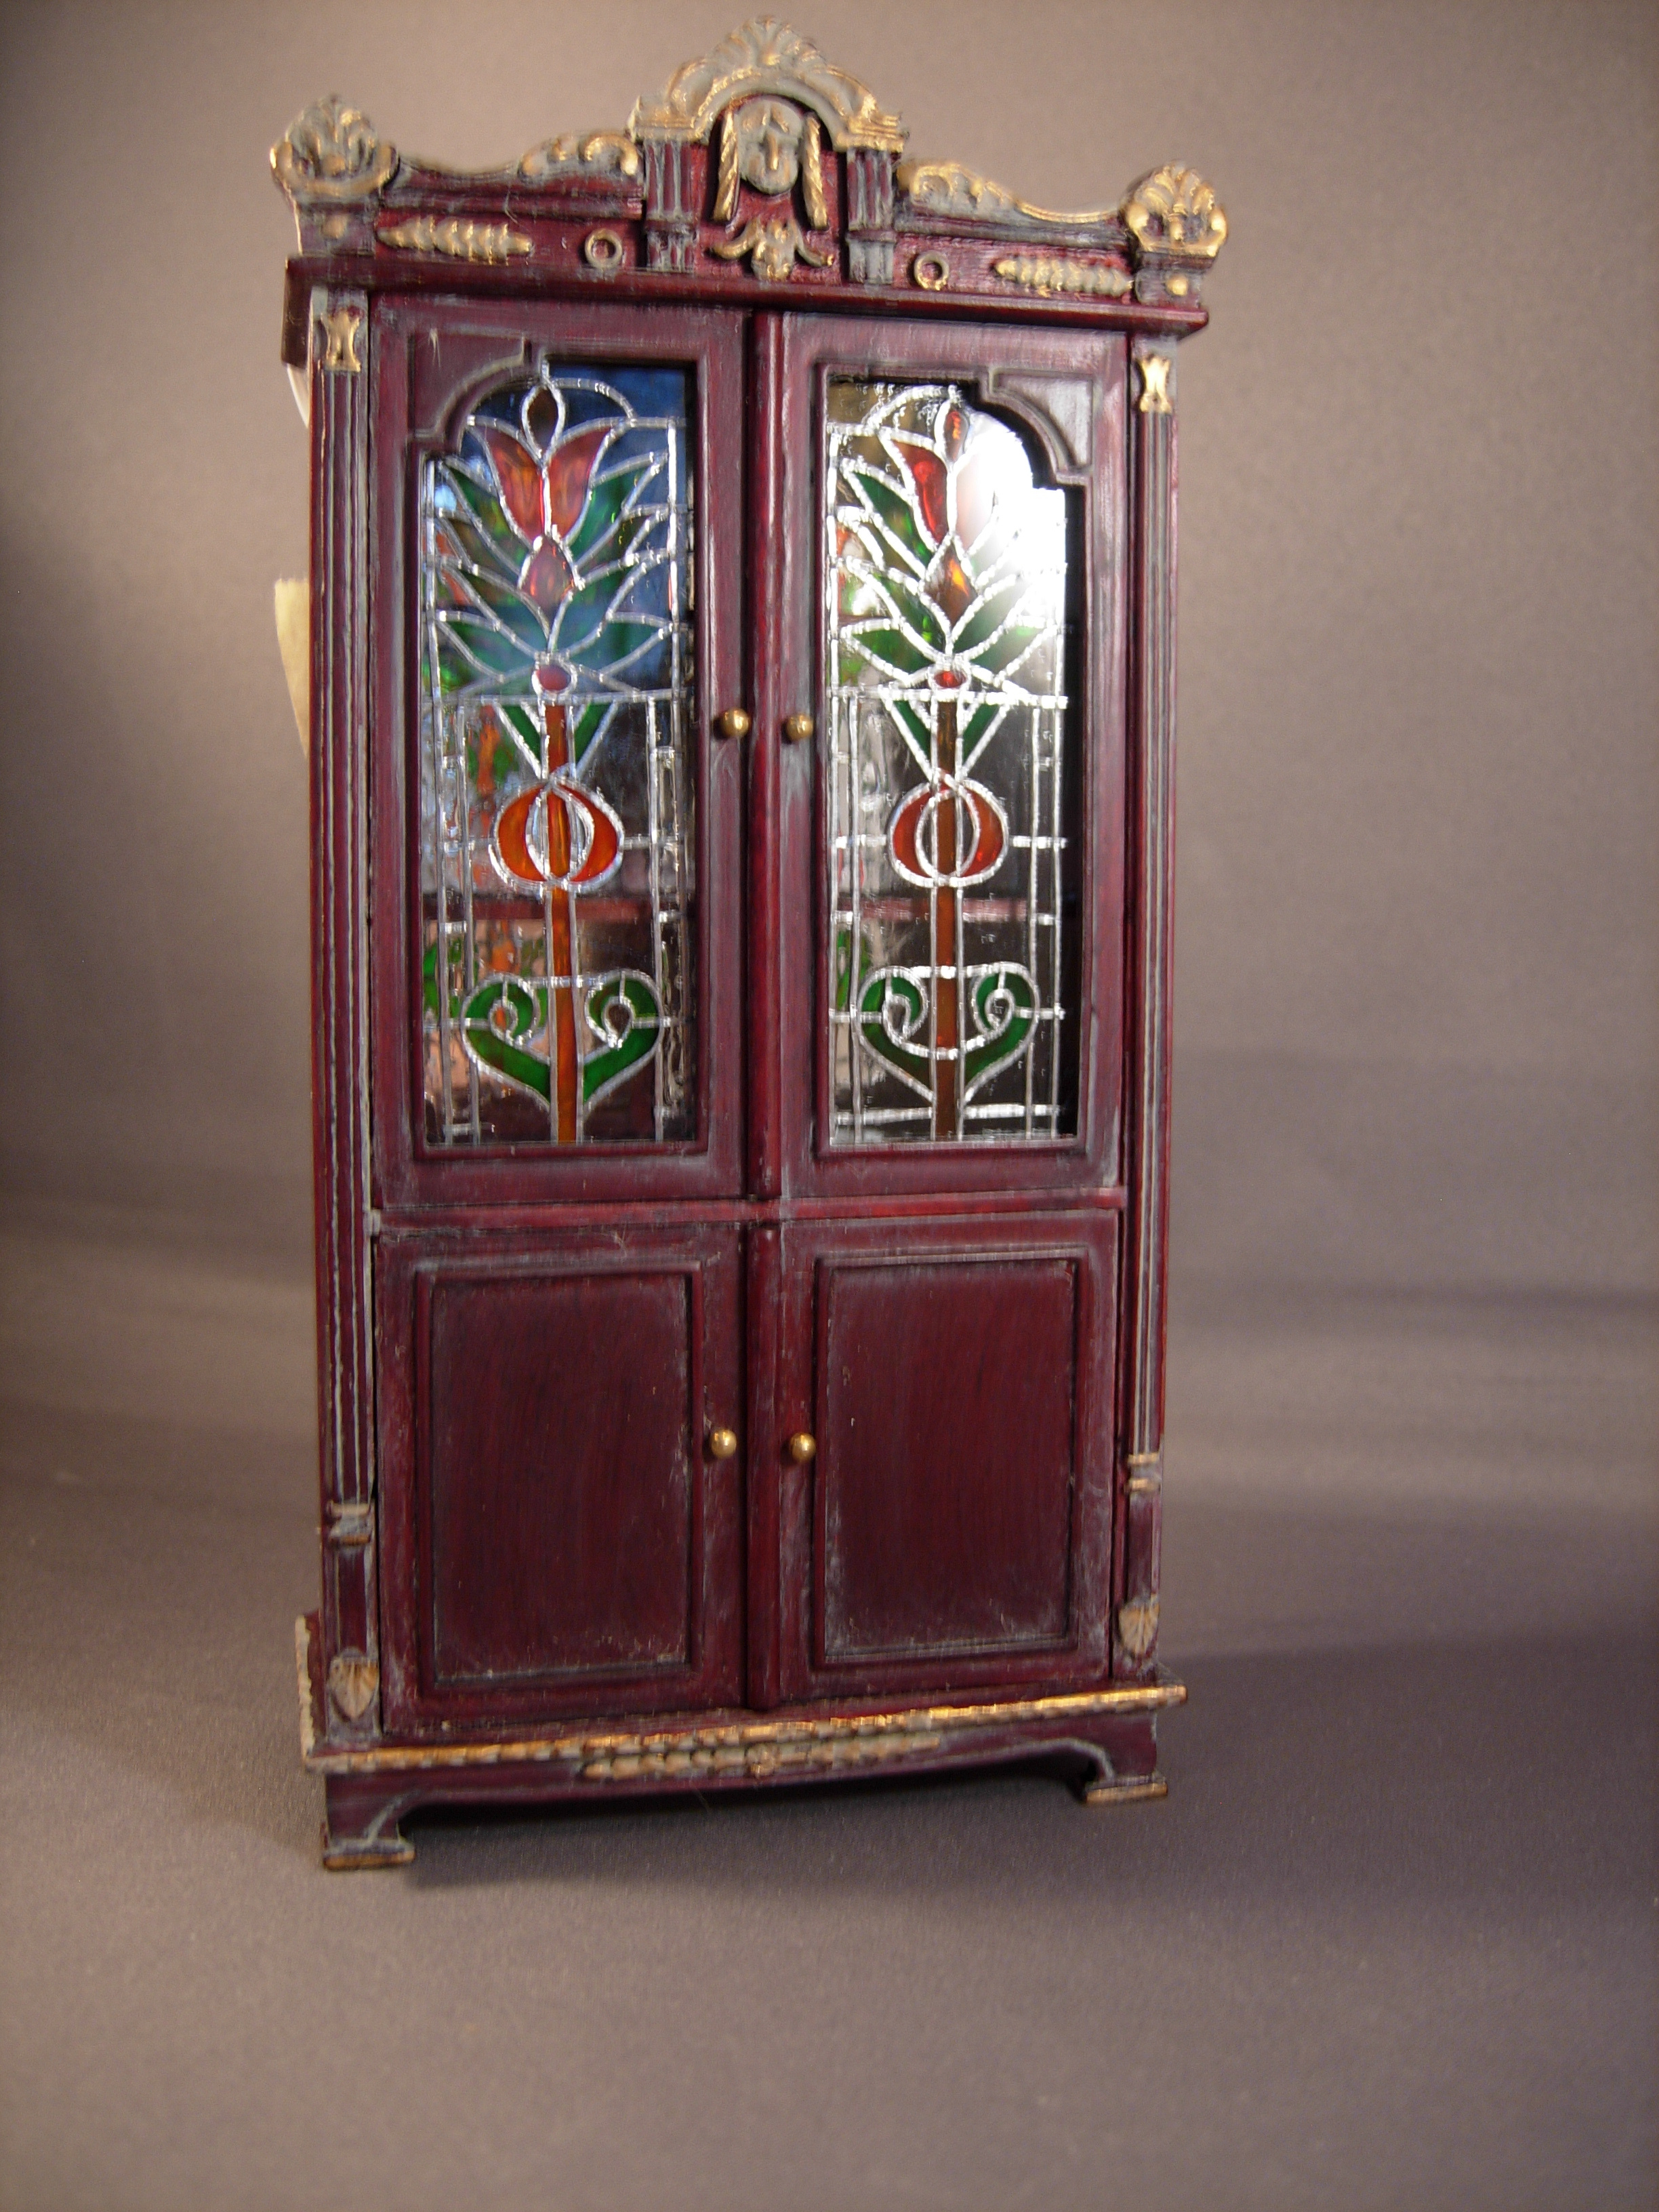 Incroyable Lit Stained Glass Cabinet   $220.